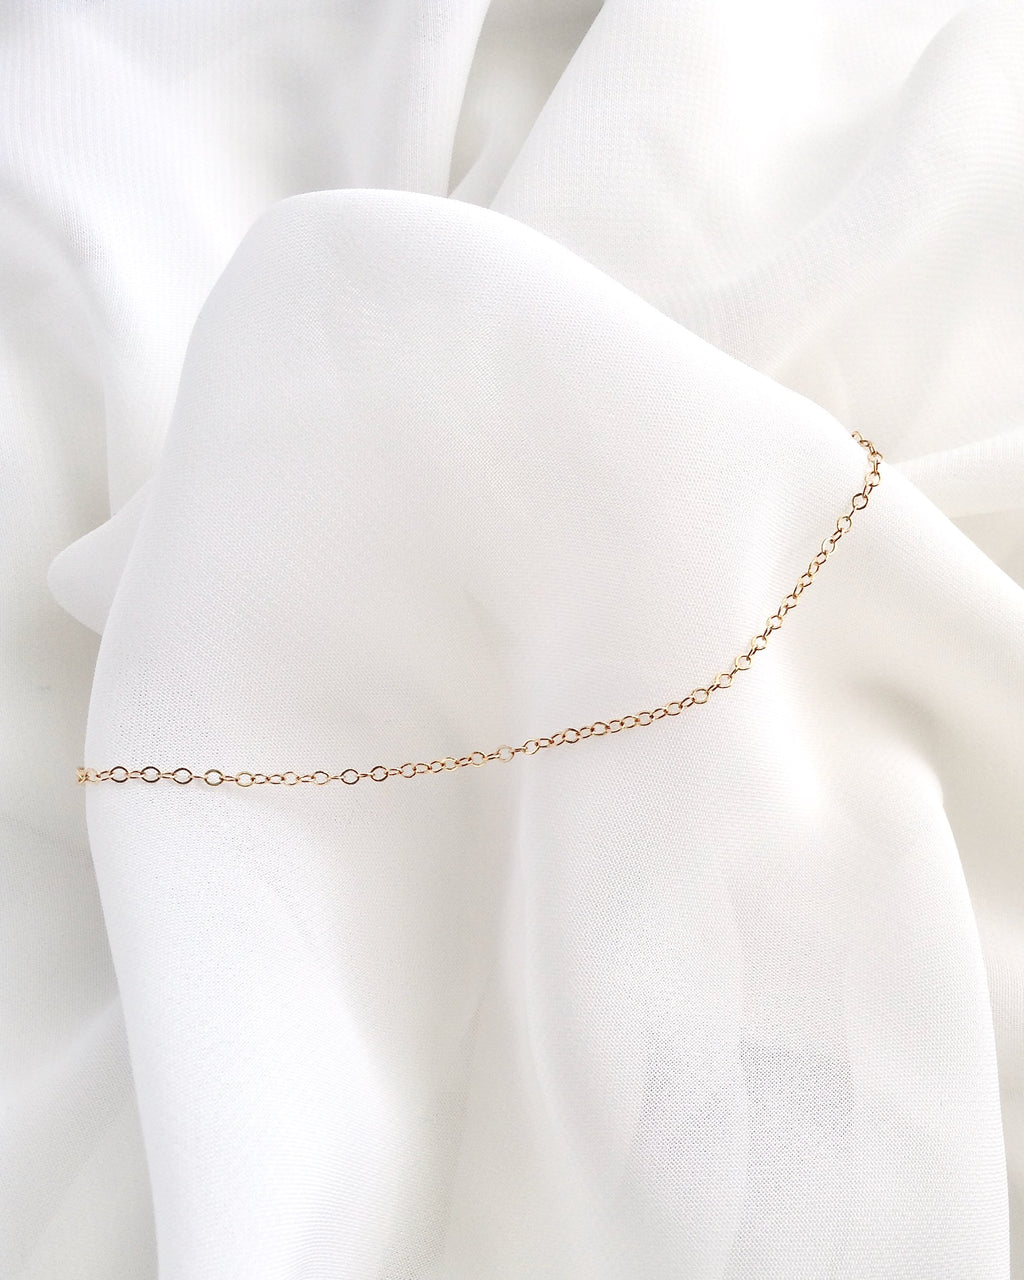 Minimalist Anklet in Gold Filled or Sterling Silver | Dainty Anklet | IB Jewelry